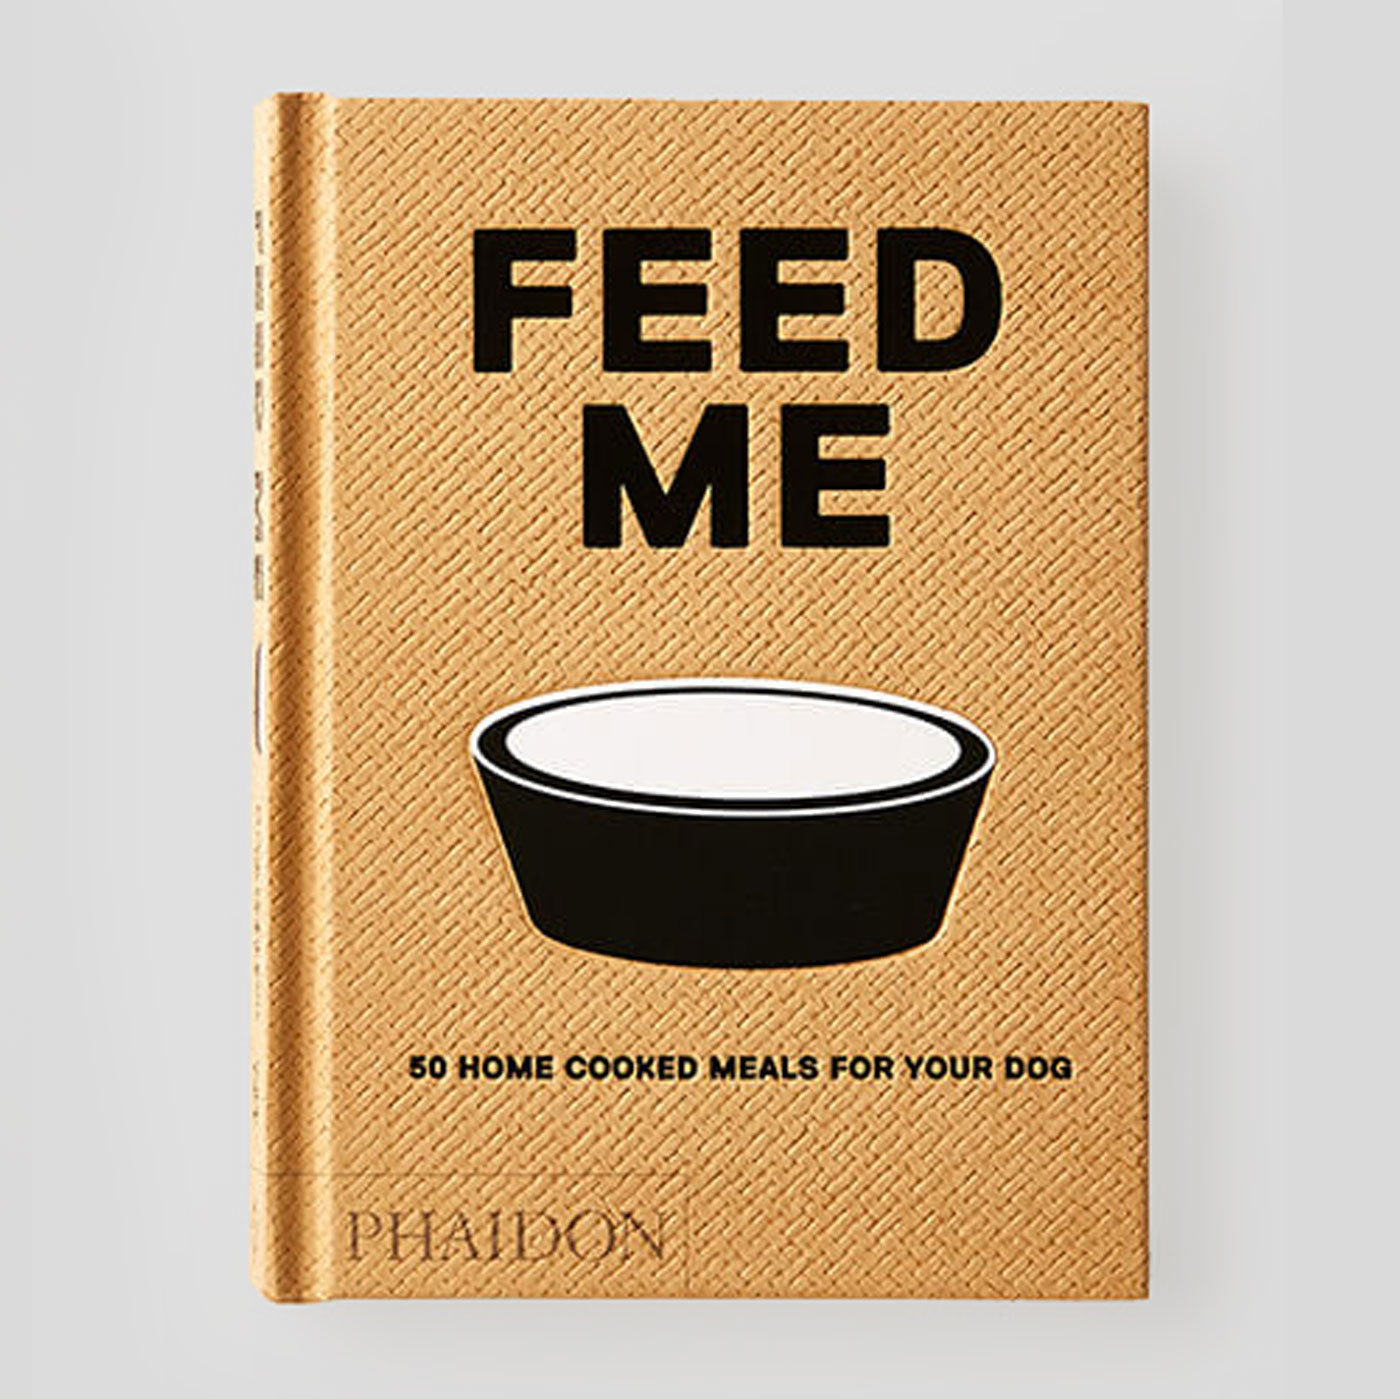 Feed Me - 50 Home Cooked Meals for your Dog